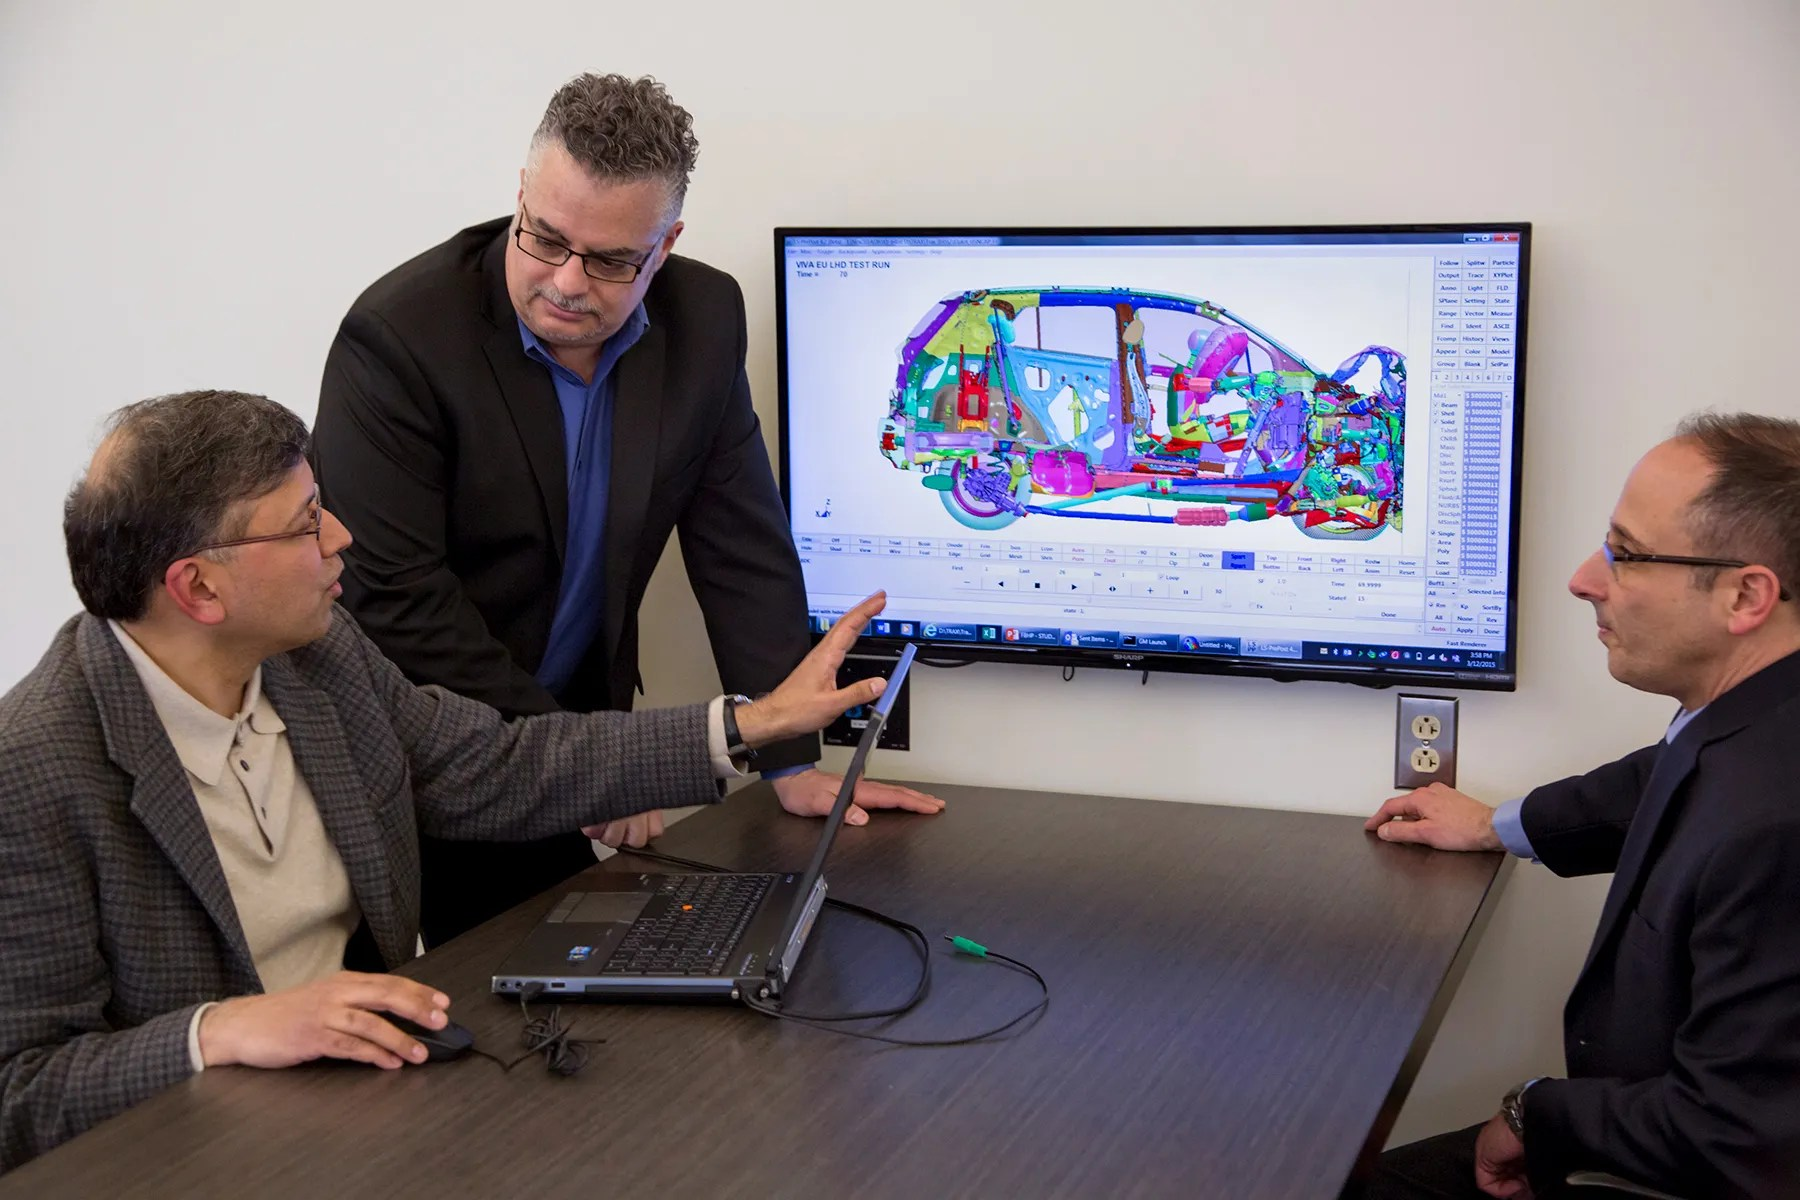 Gm's Using Simulated Crashes To Build Safer Cars  Wired